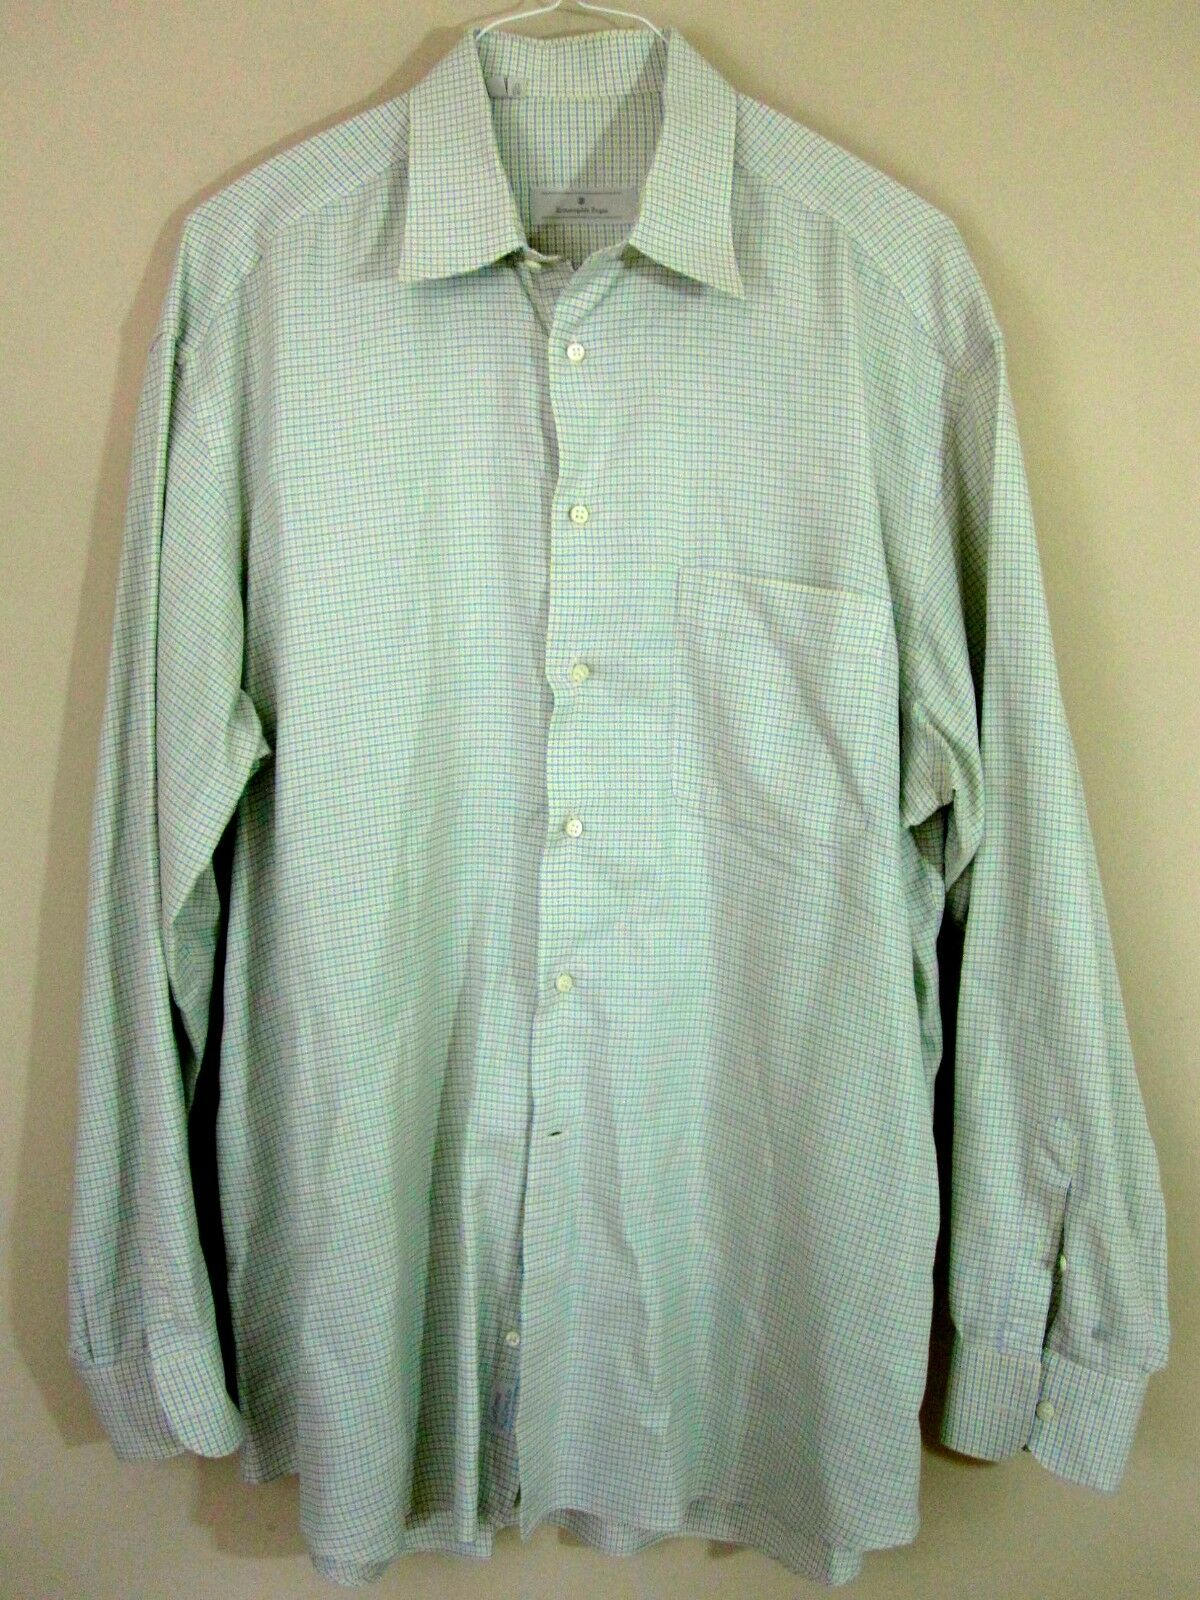 Ermenegildo Zegna Shirt XL 43 17 bluee Yellow Micro Plaid Extra Large Mens